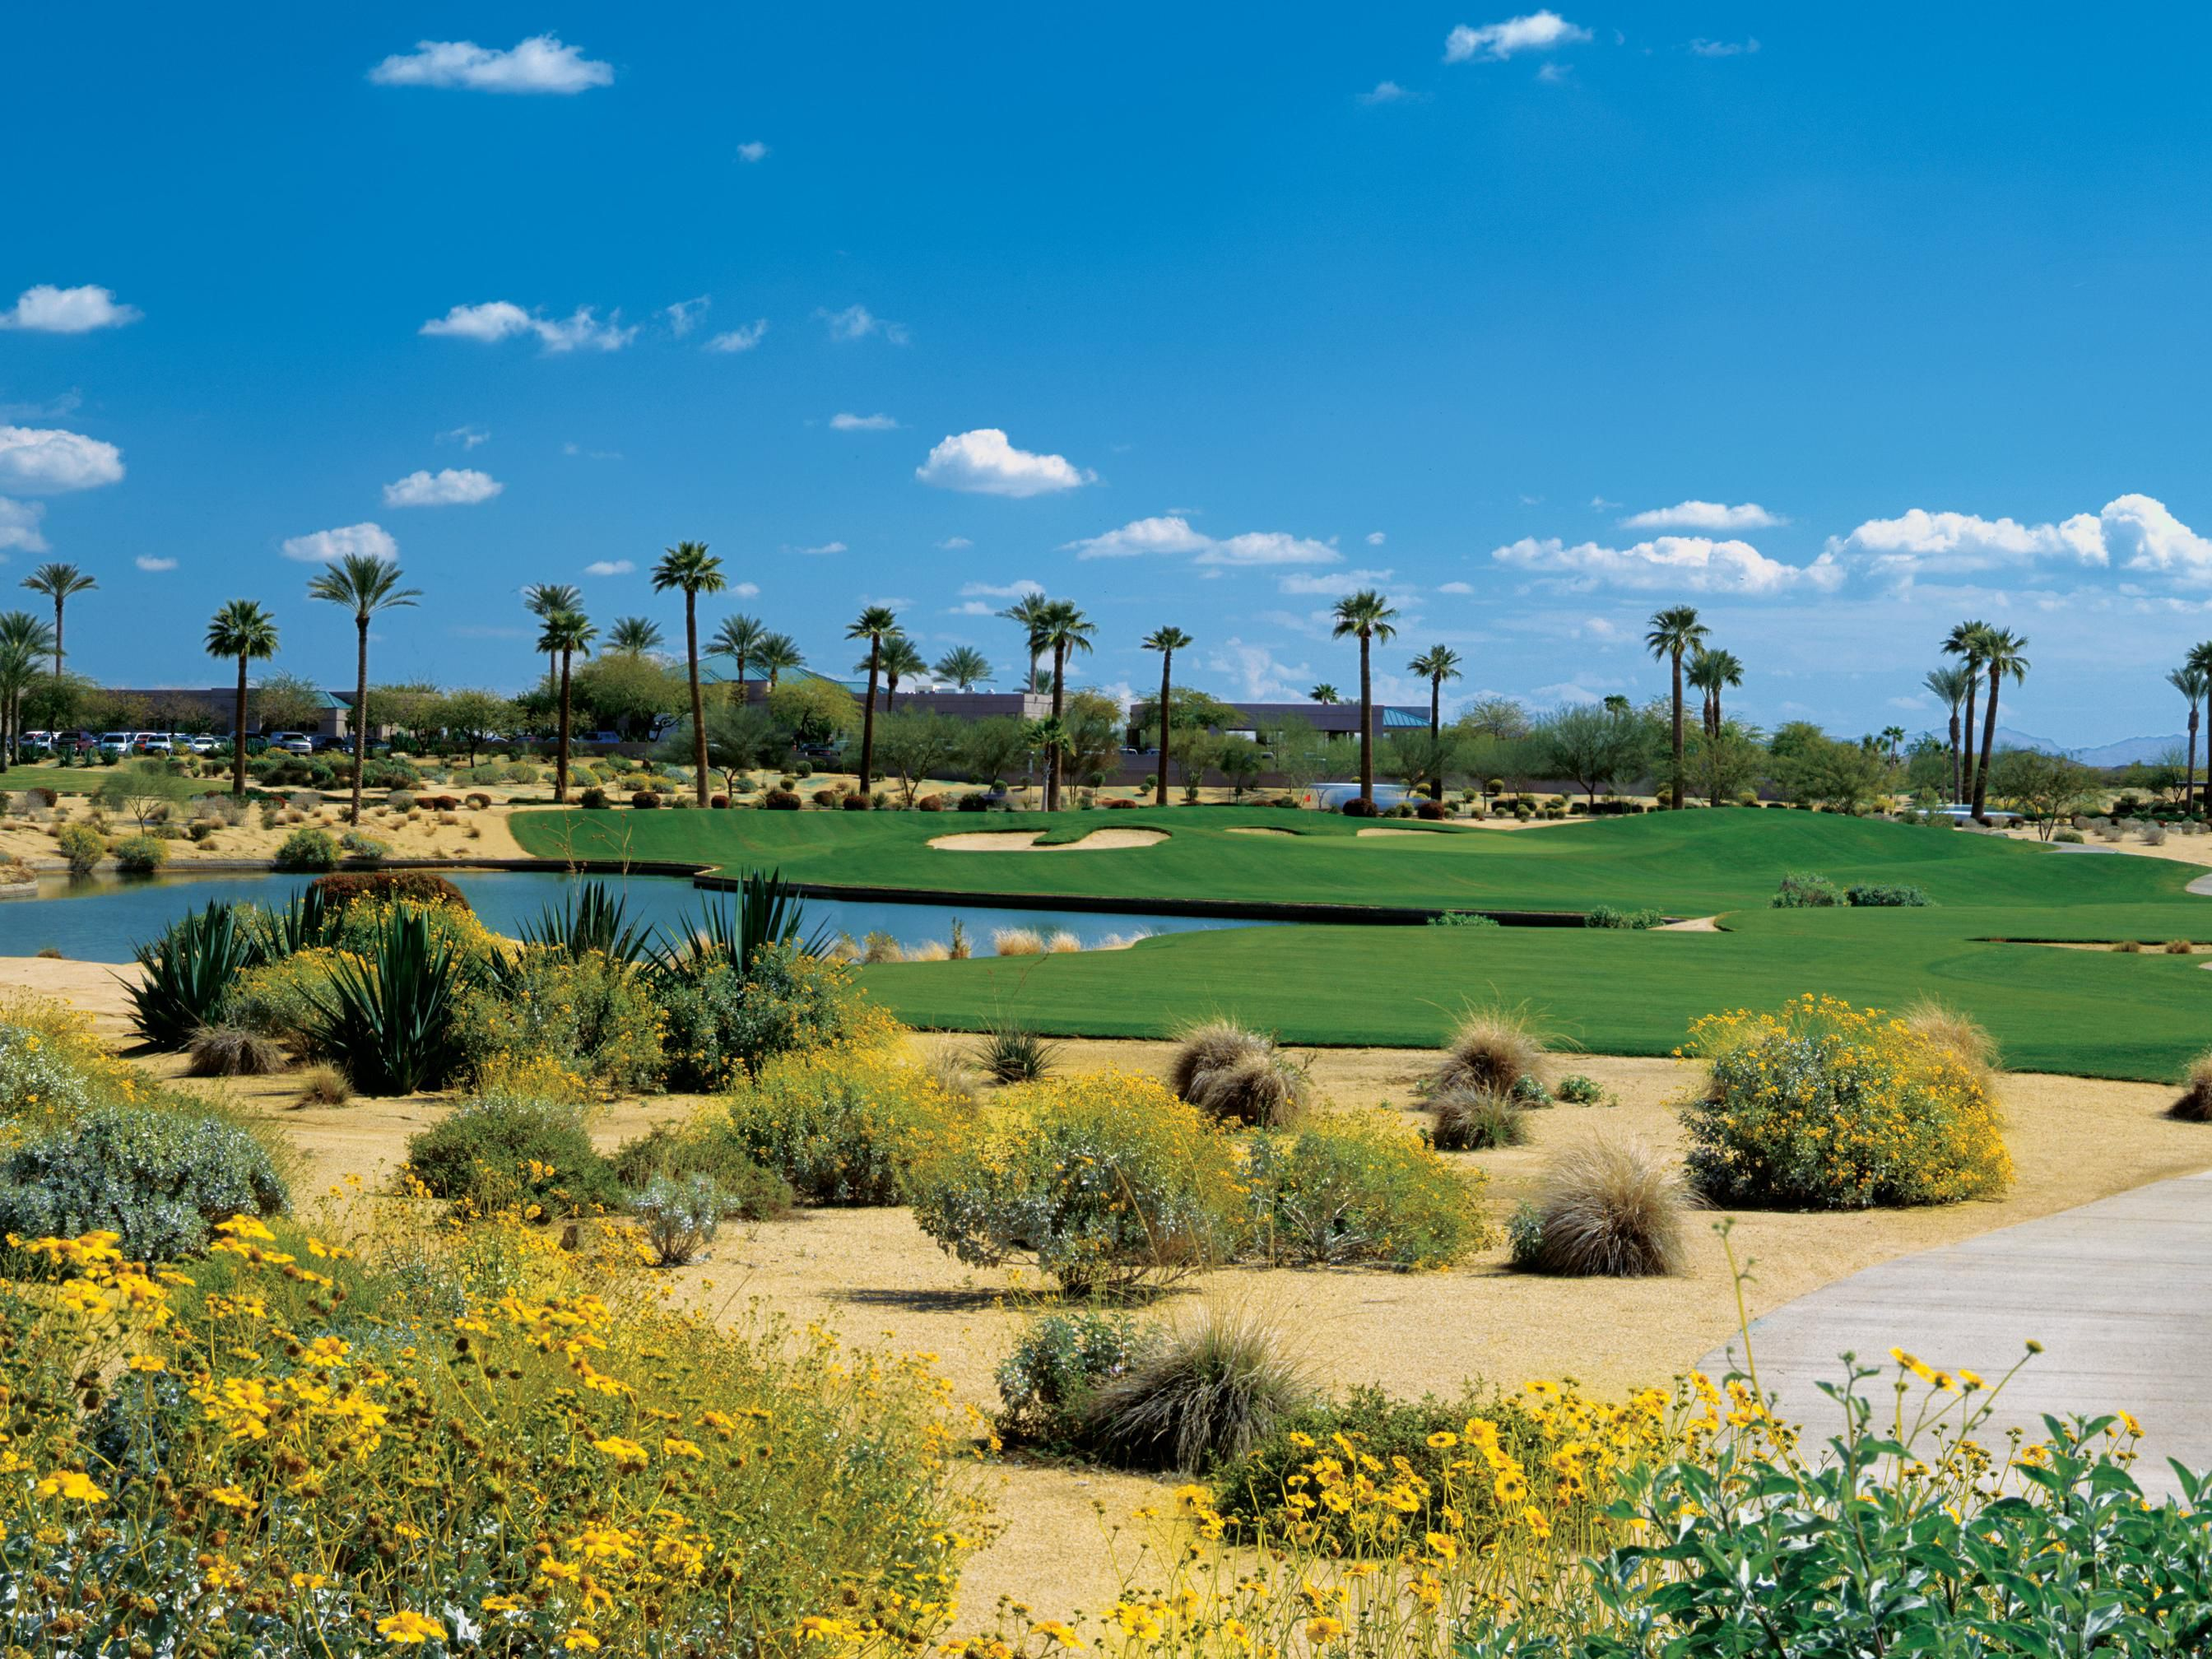 Palm valley Golf Course, just minutes away from the hotel